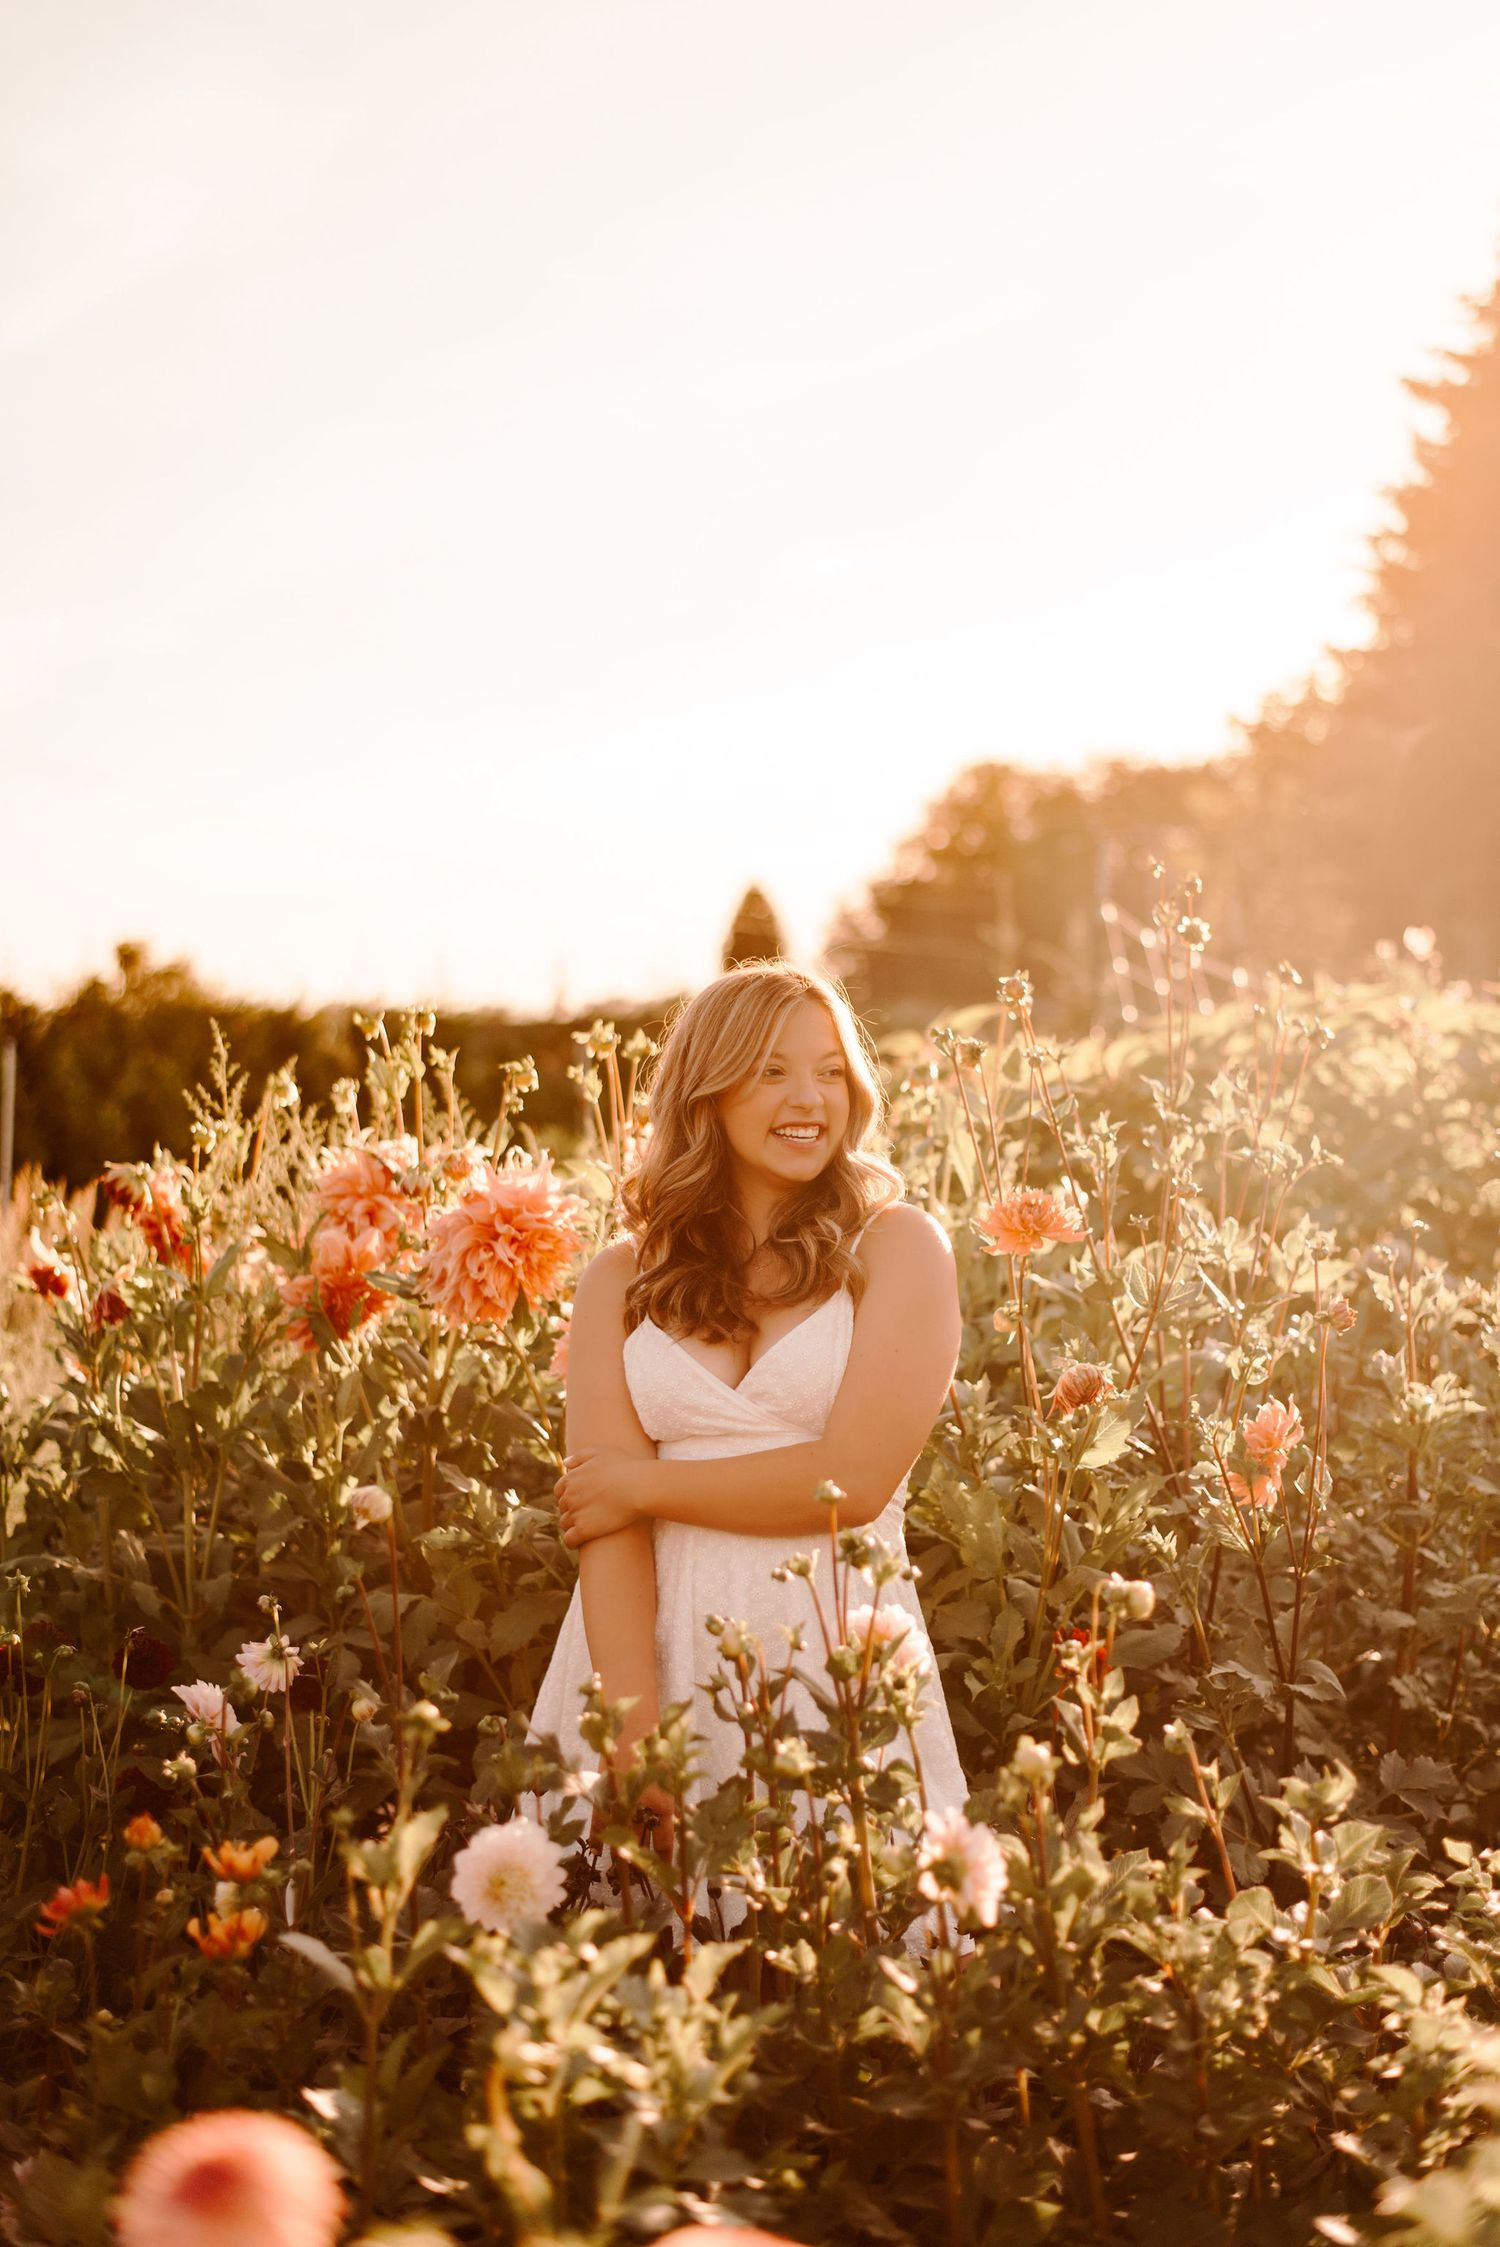 Greenhouse Senior Portraits | Snohomish Senior Photographer | Seattle Senior Photographer | Pine Creek Nursery